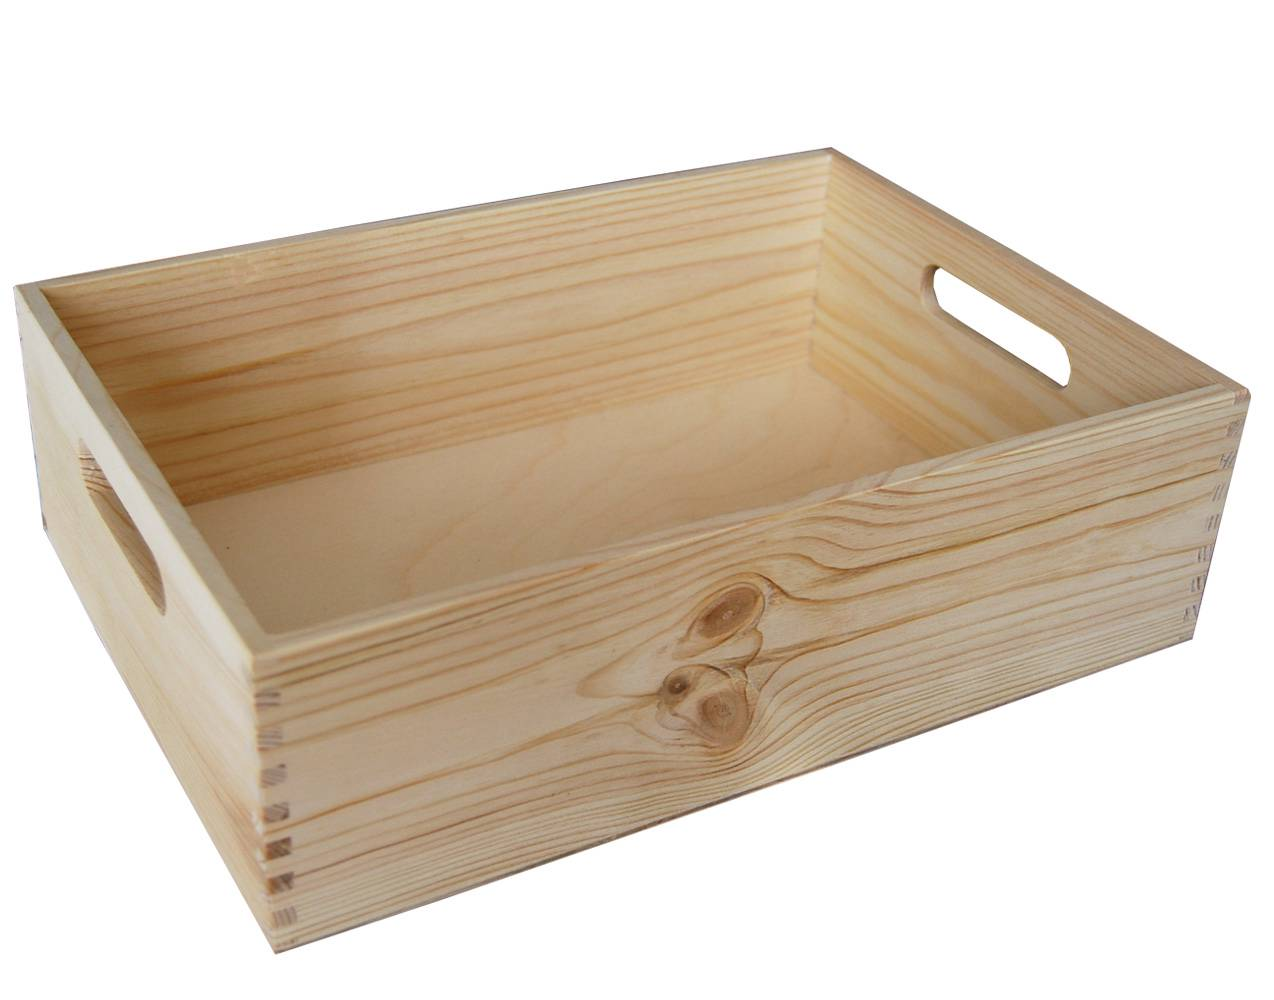 5 x wooden crate with handles plain wood decoupage big srd for Timber crates